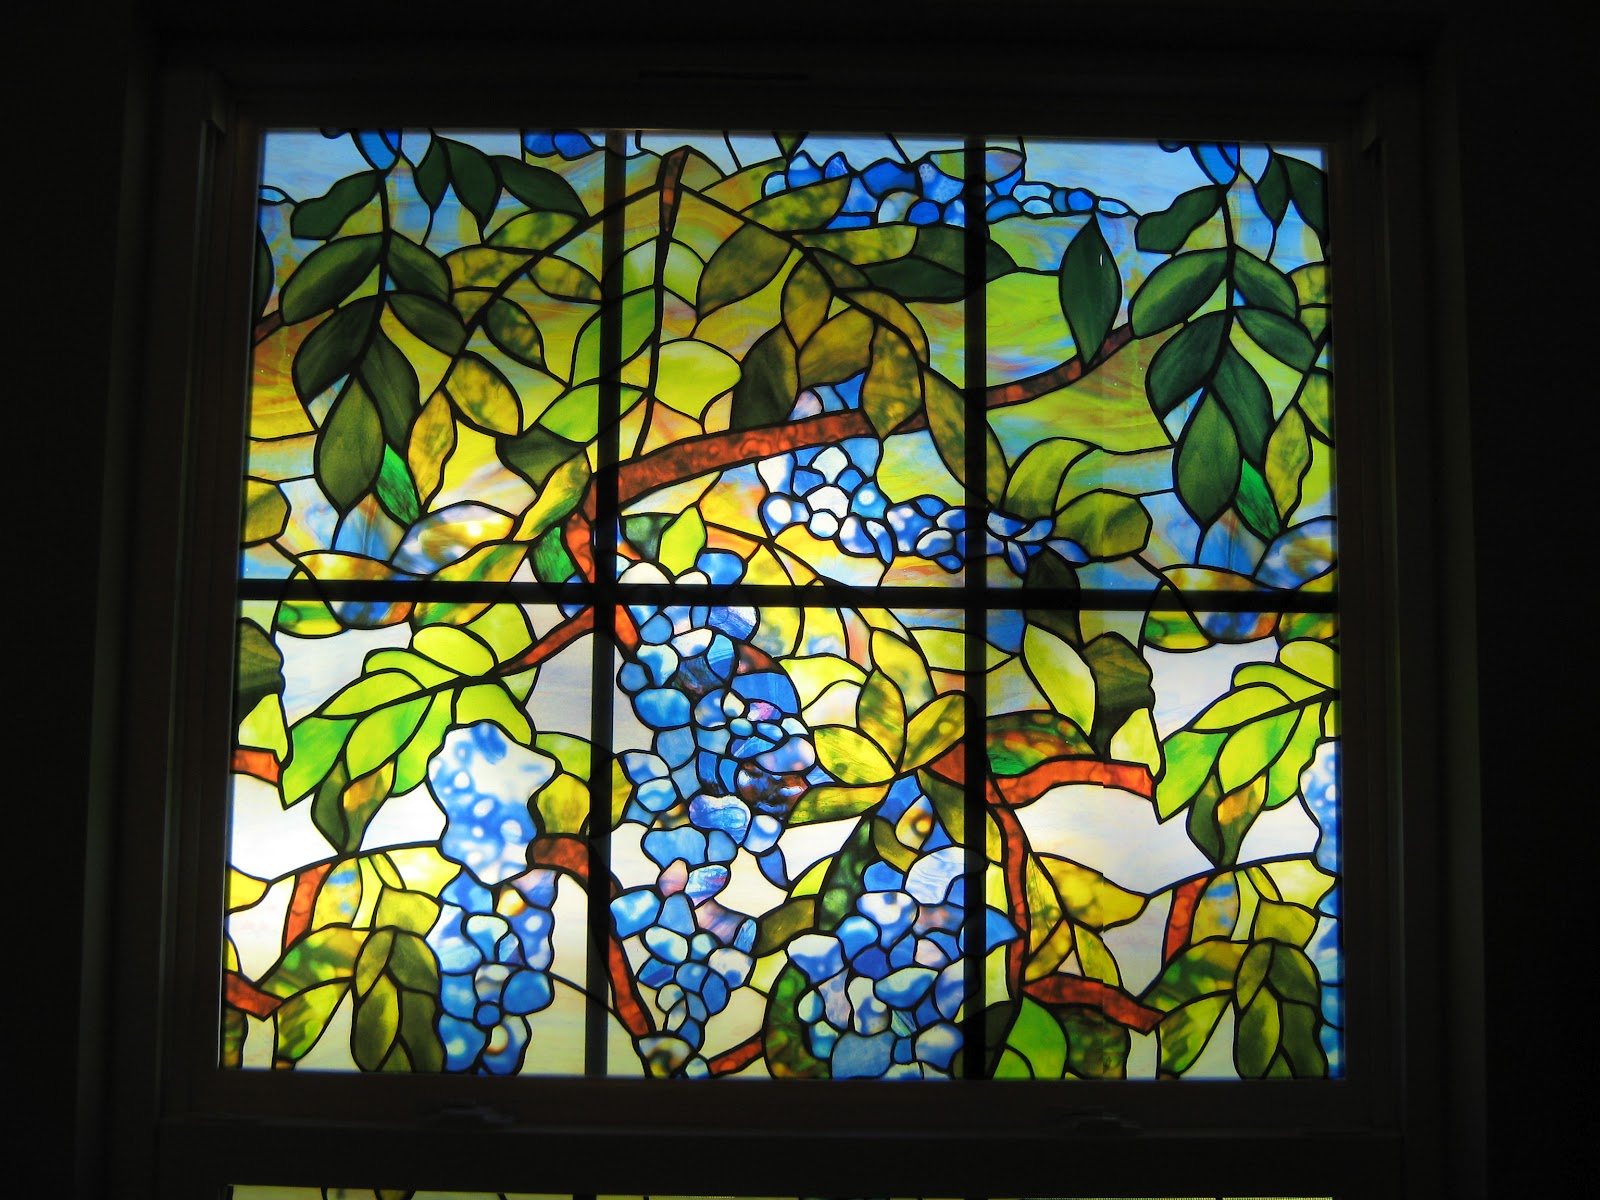 Stained glass window film benchmark imaging display for Stained glass window film